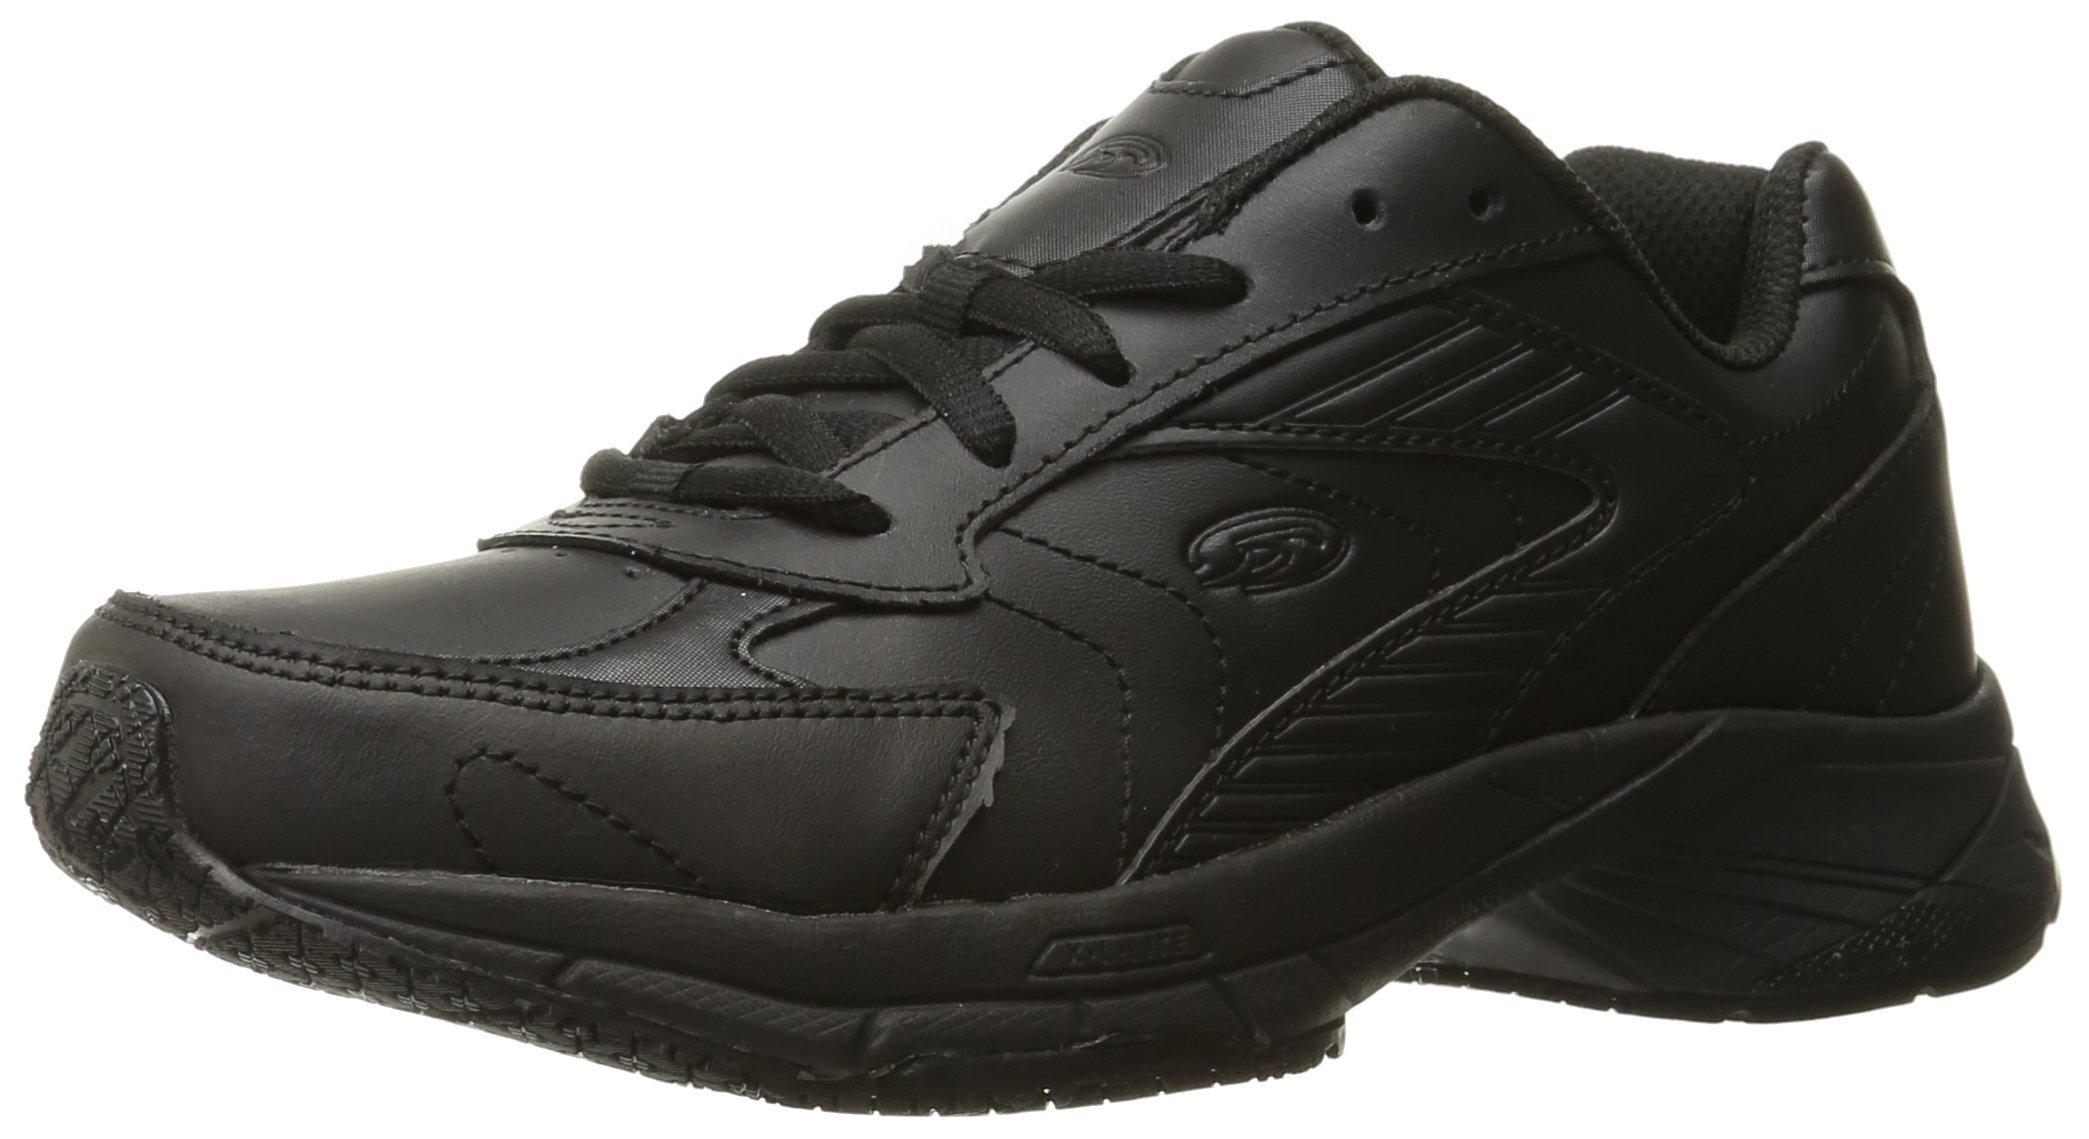 Dr. Scholl's Shoes Women's Destiny Uniform Dress Shoe, Black, 9.5 W US by Dr. Scholl's Shoes